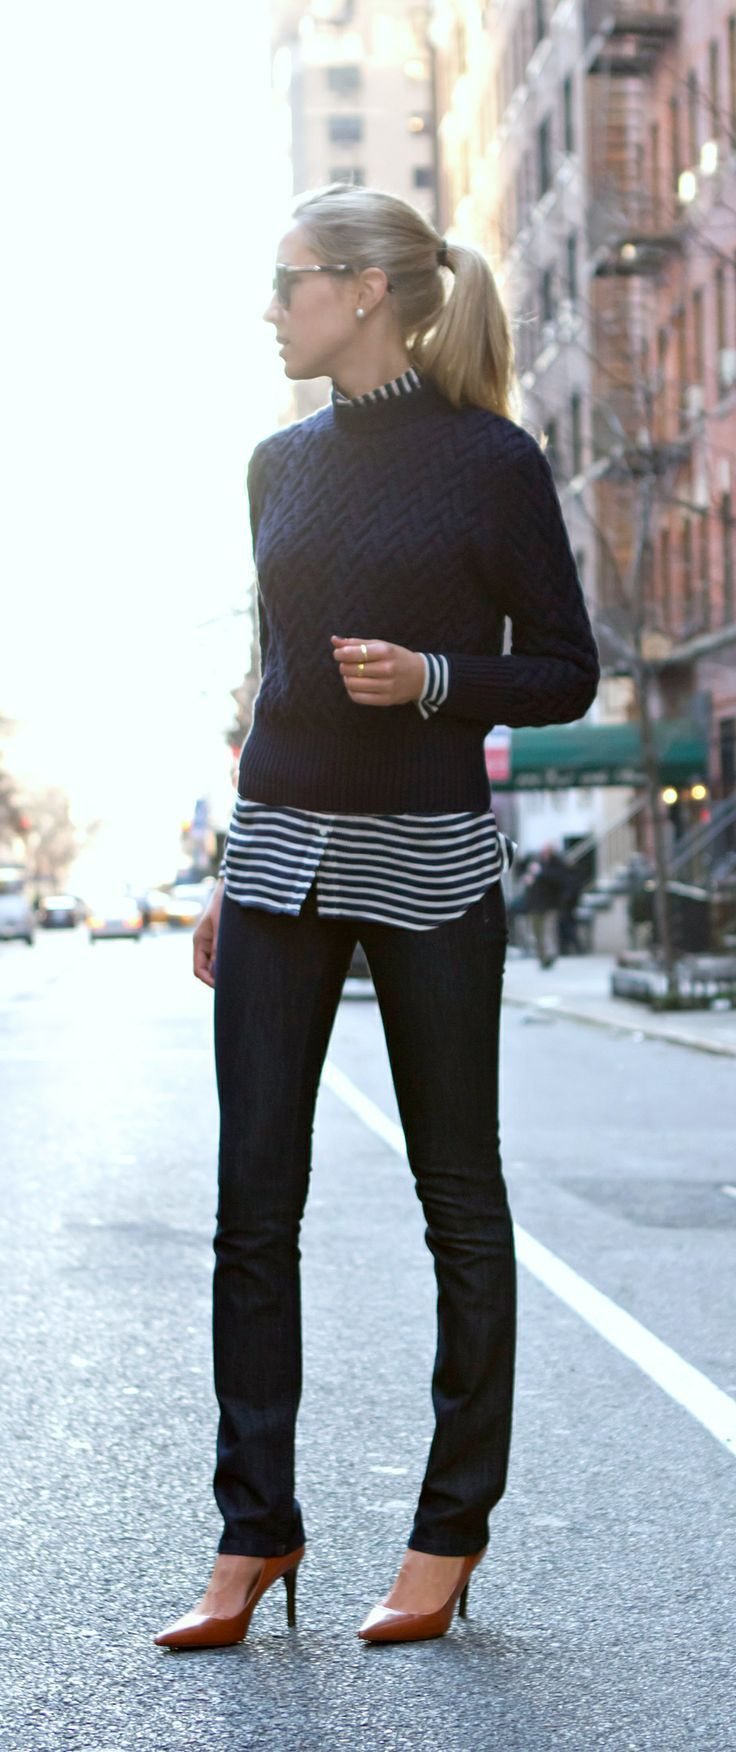 Women 39 s navy crew neck sweater white and navy horizontal for Crew neck sweater with collared shirt